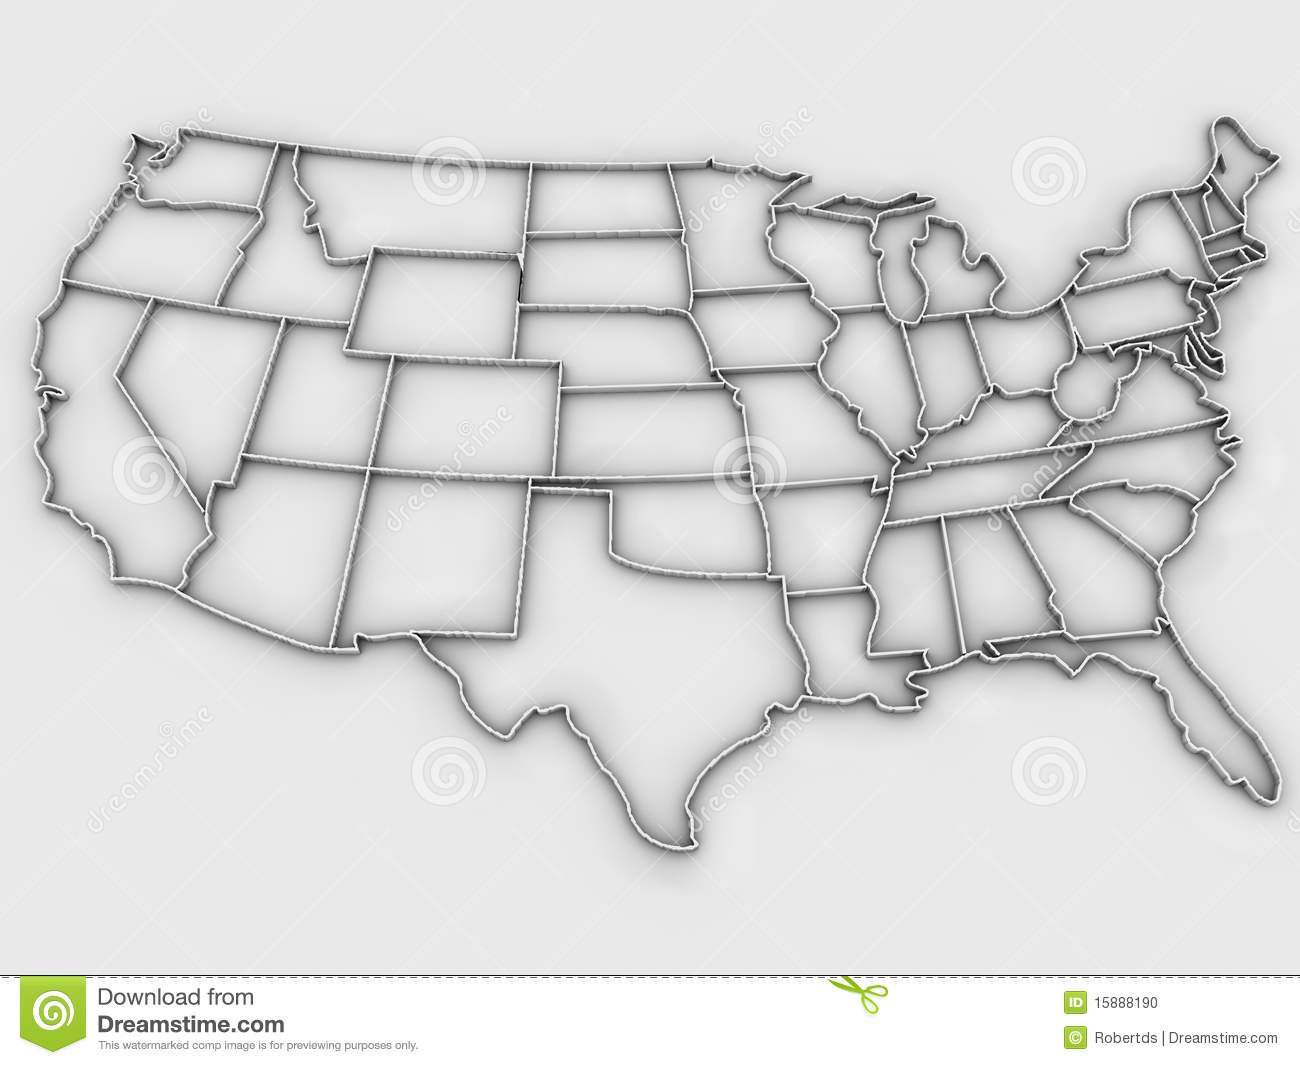 United States map 3d stock illustration. Illustration of isolated